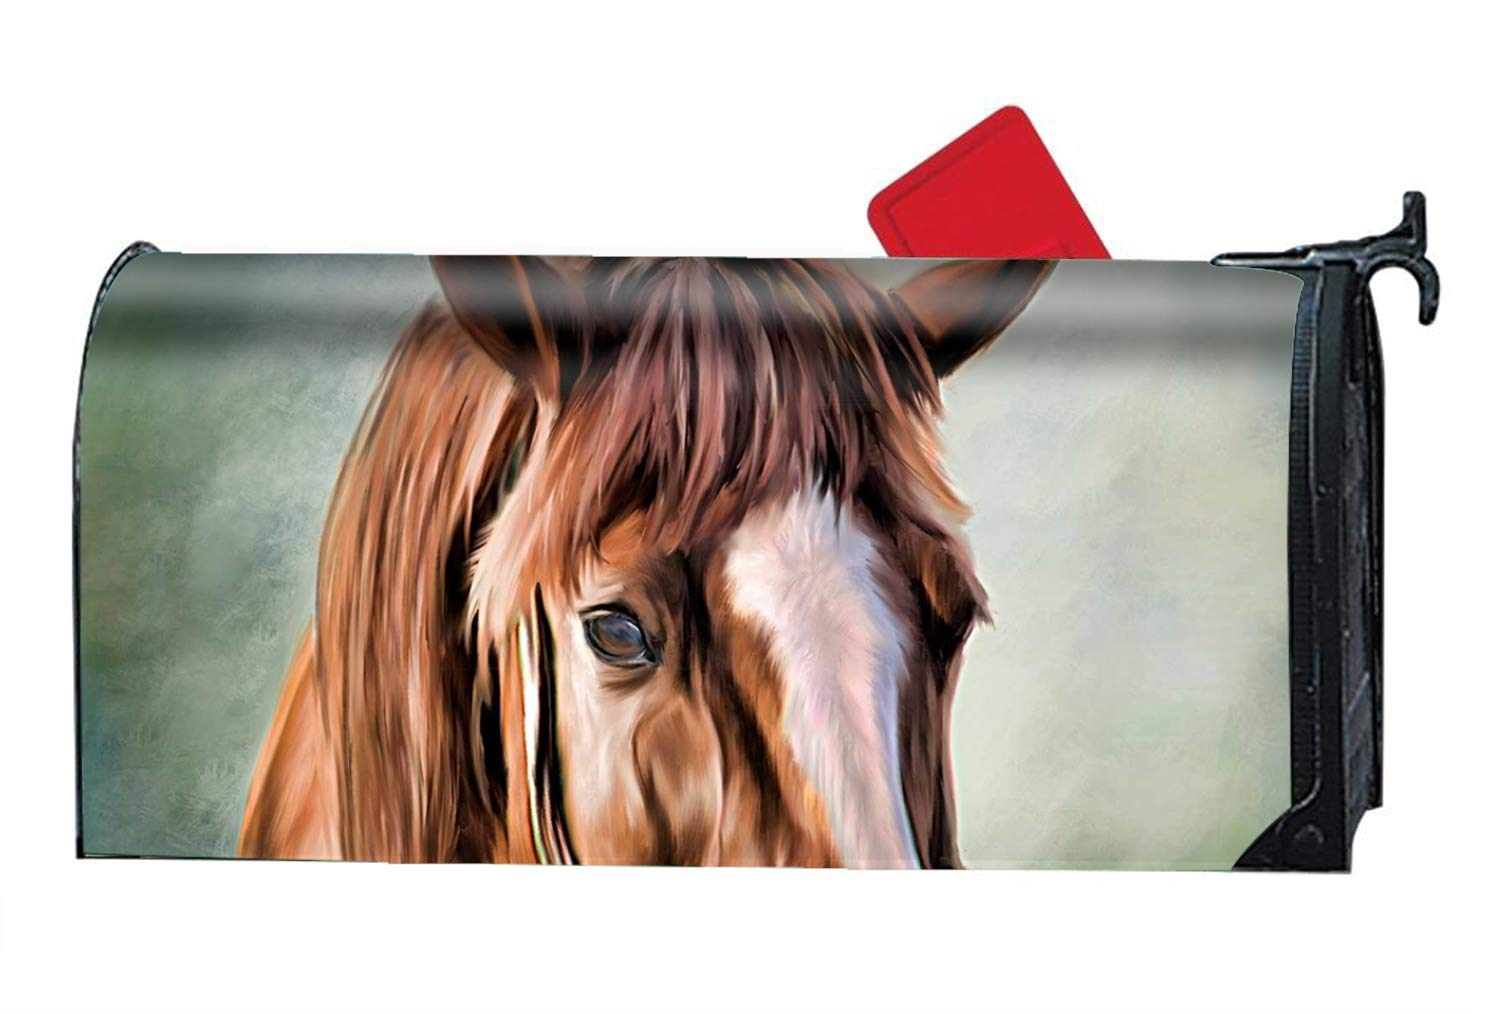 KSLIDS Horse Paintings Magnetic Mailbox Covers, Suitable for Spring, Summer, Fall/Autumn and Winter by KSLIDS (Image #1)